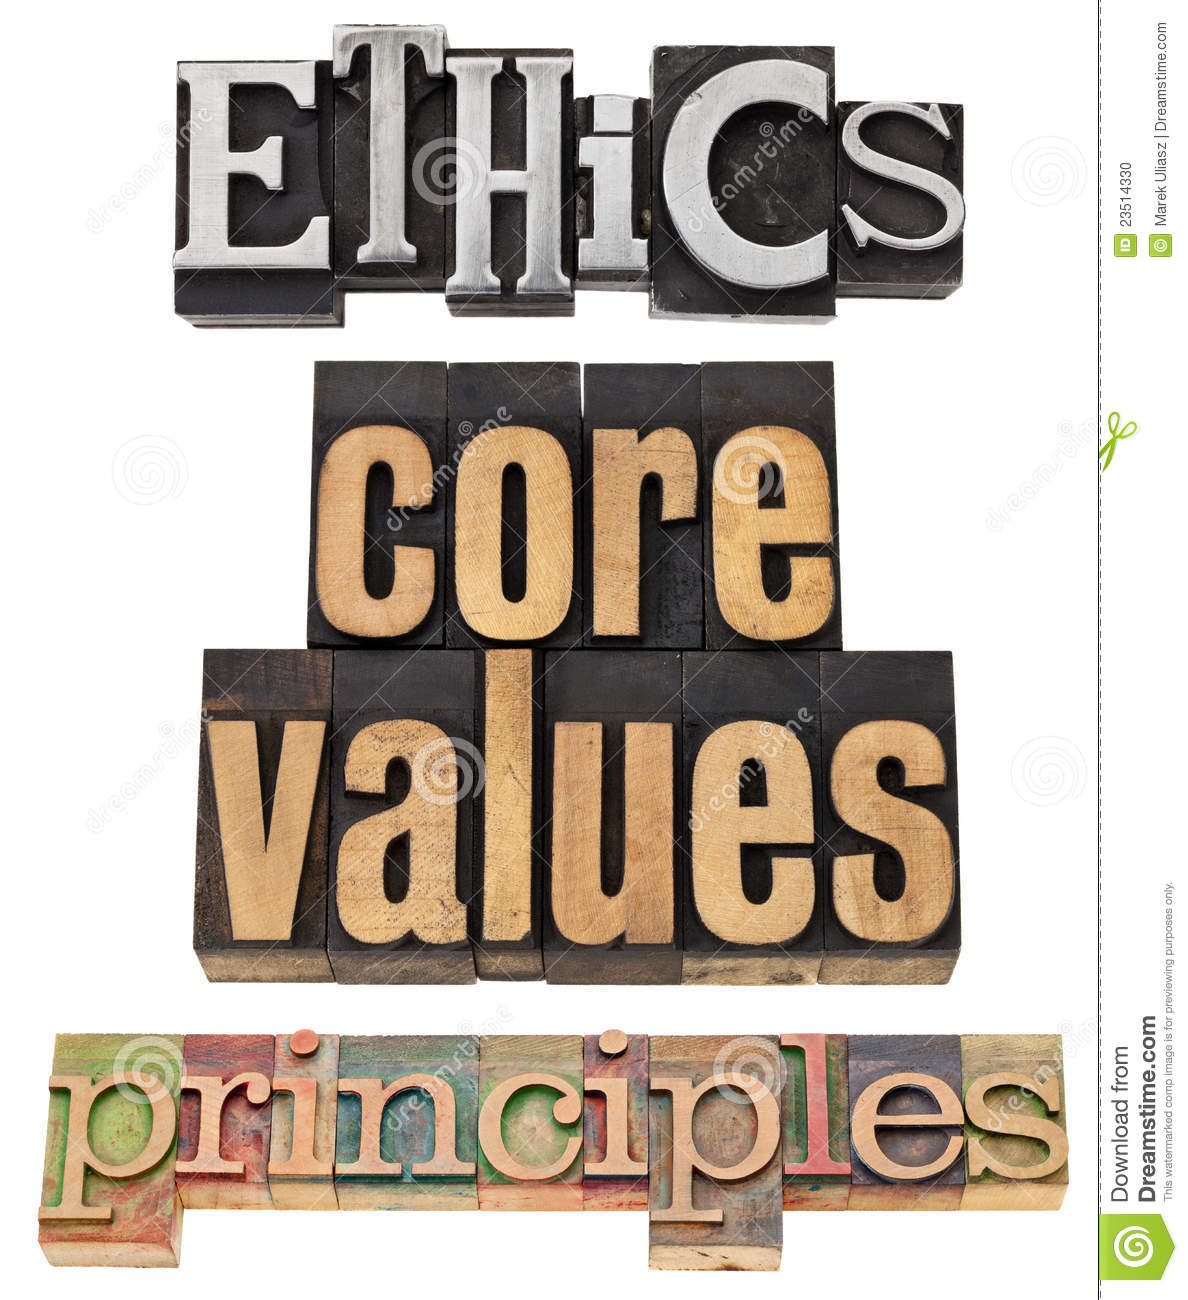 principles and ethics College track conducts its mission within the highest standards of ethical  all of  these principles provide a foundation for the code of ethics that follows.